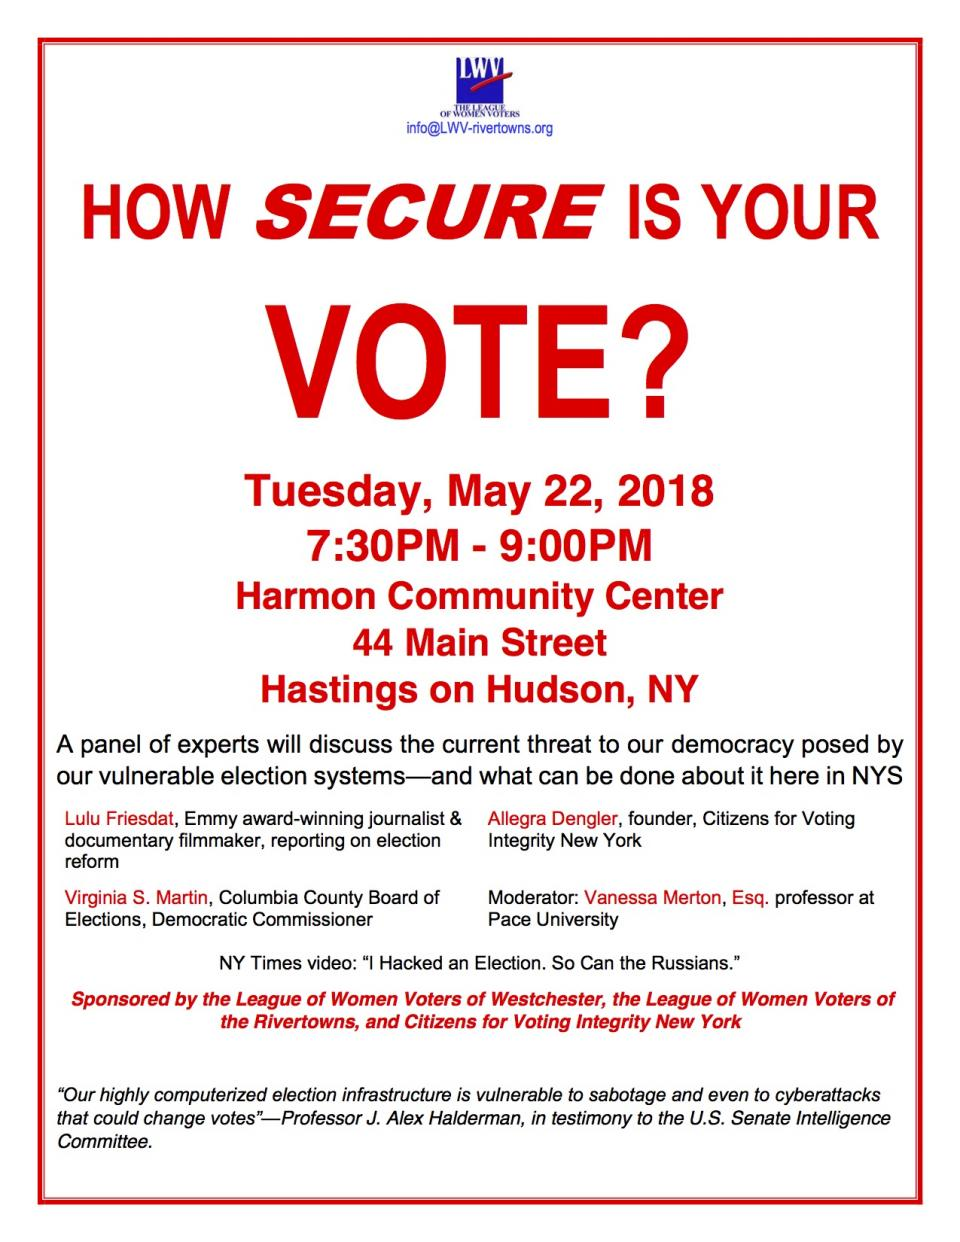 How secure is your vote?